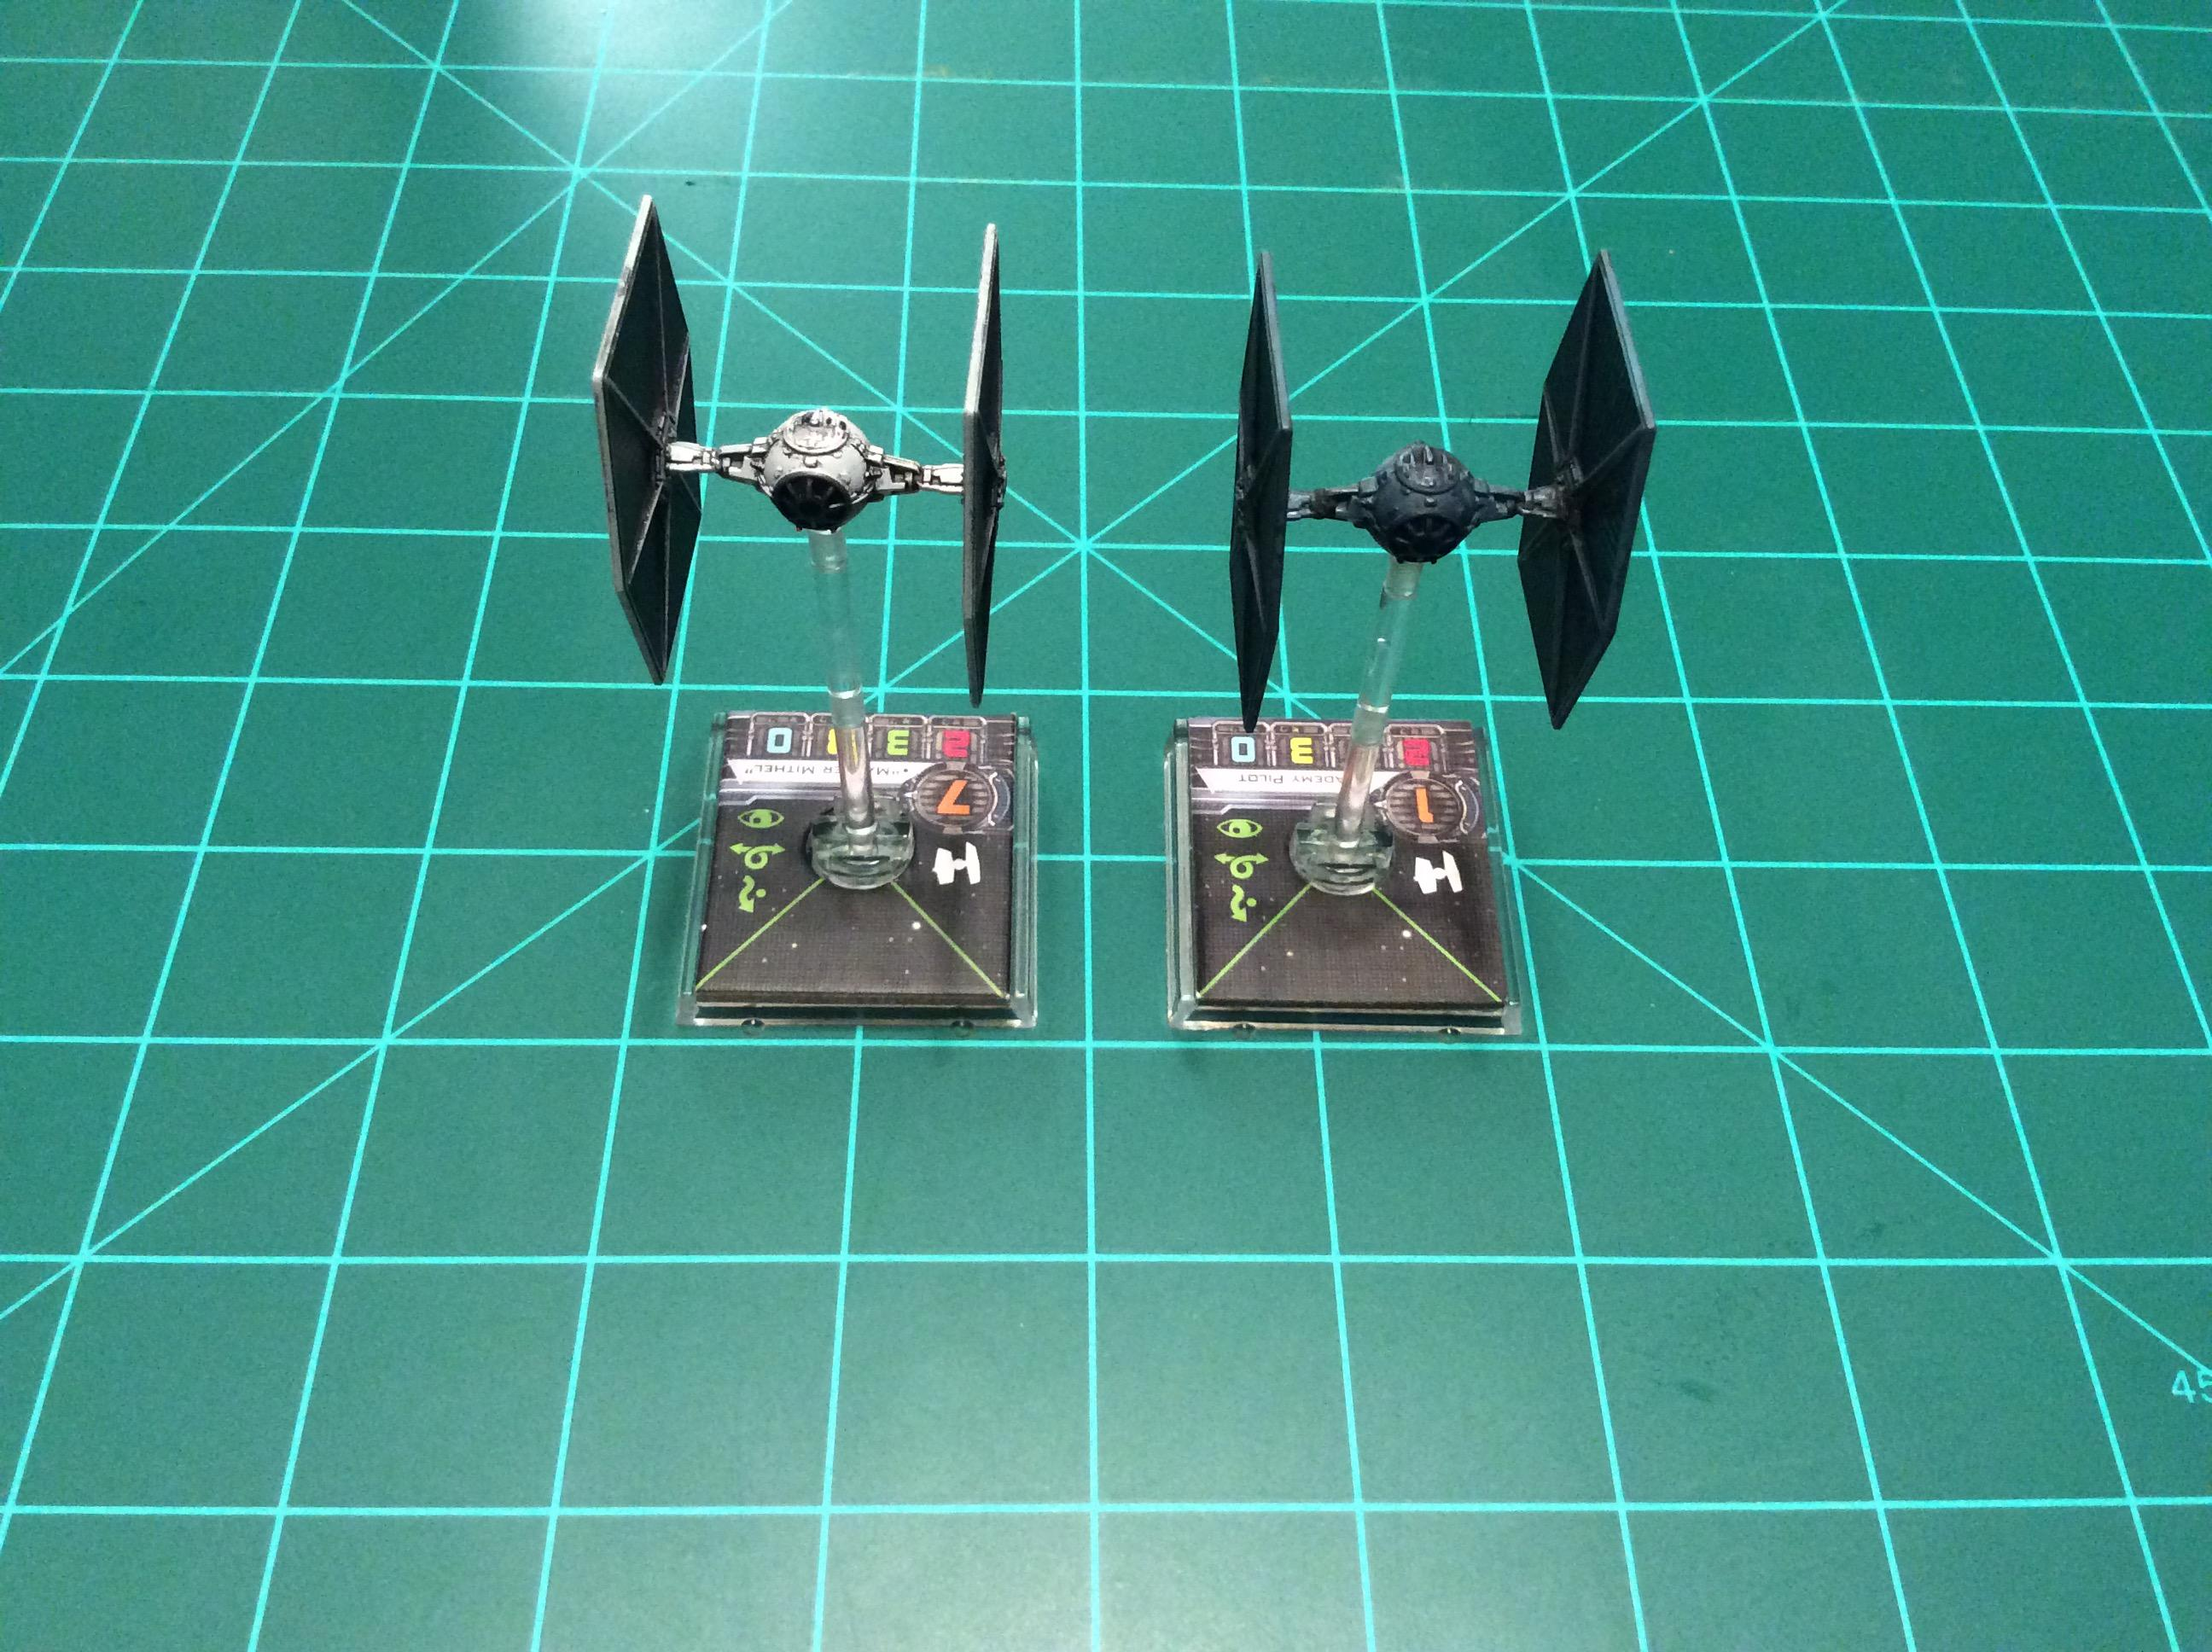 1/270 Scale, Advanced, Defender, E-wing, Interceptor, Scum And Villainy, Star Wars, Tie Fighter, X-wing Miniatures Game